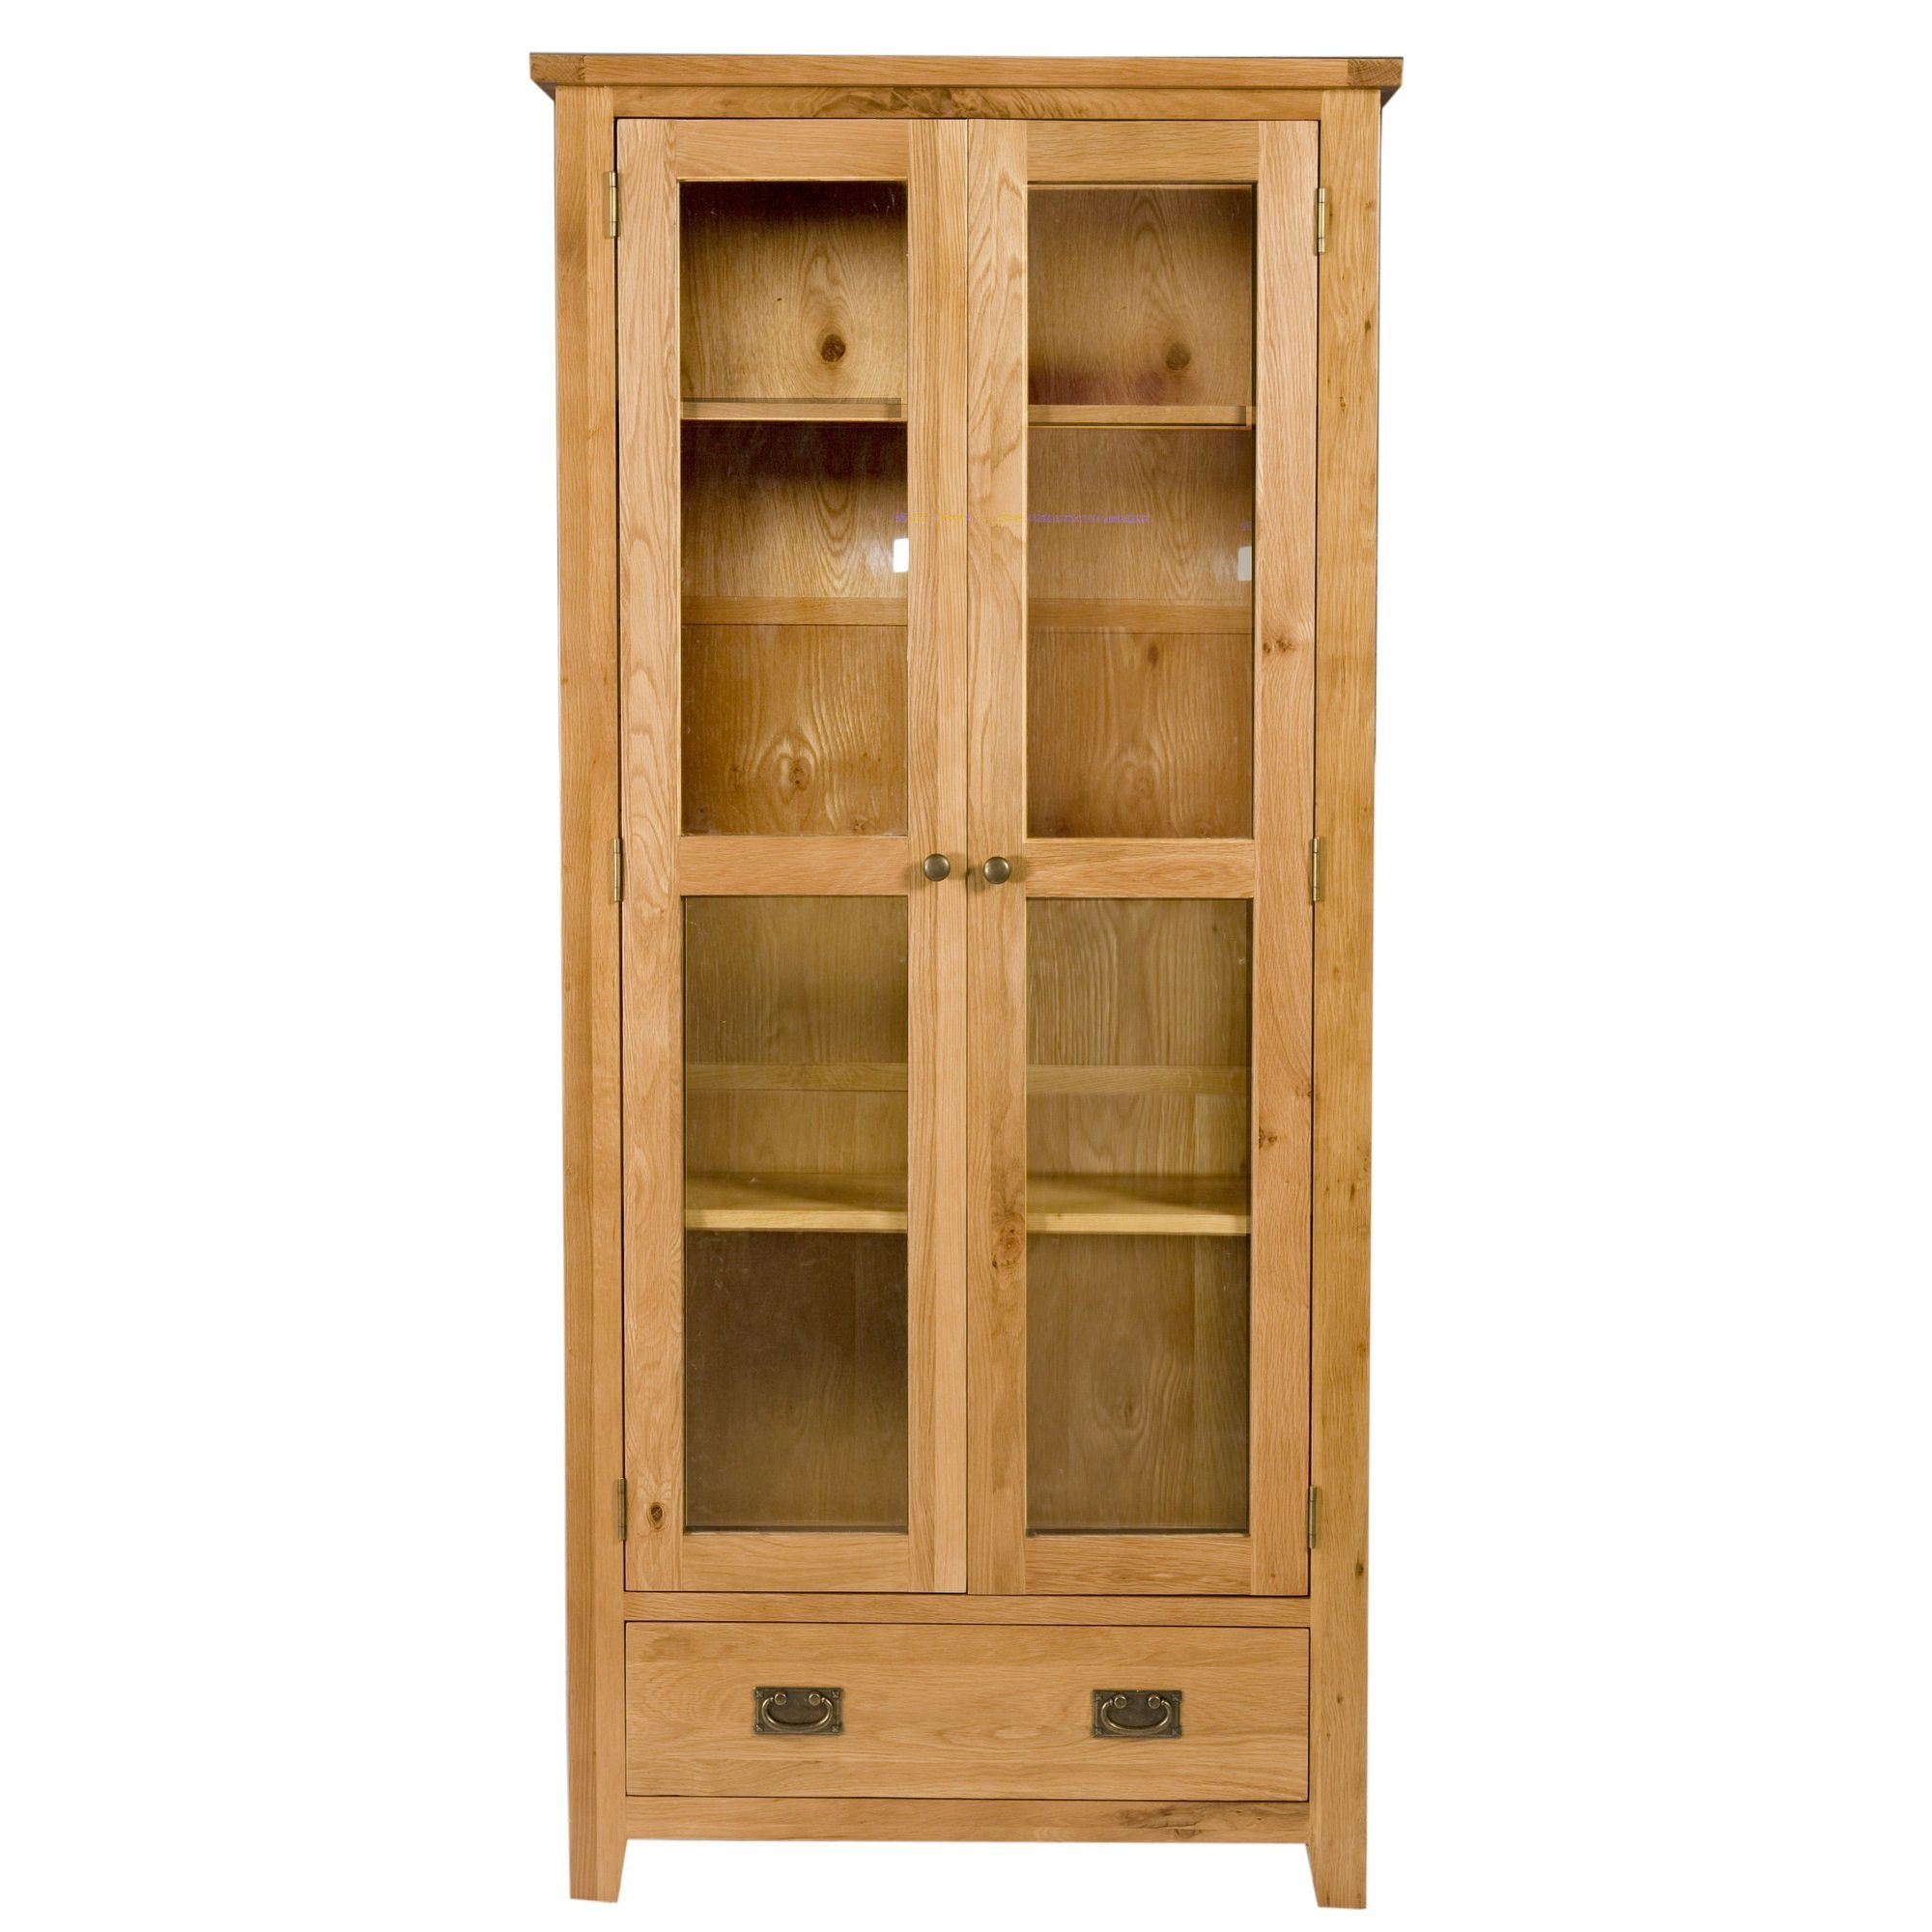 Elements Brunswick Dining Display Cabinet in Warm Lacquer